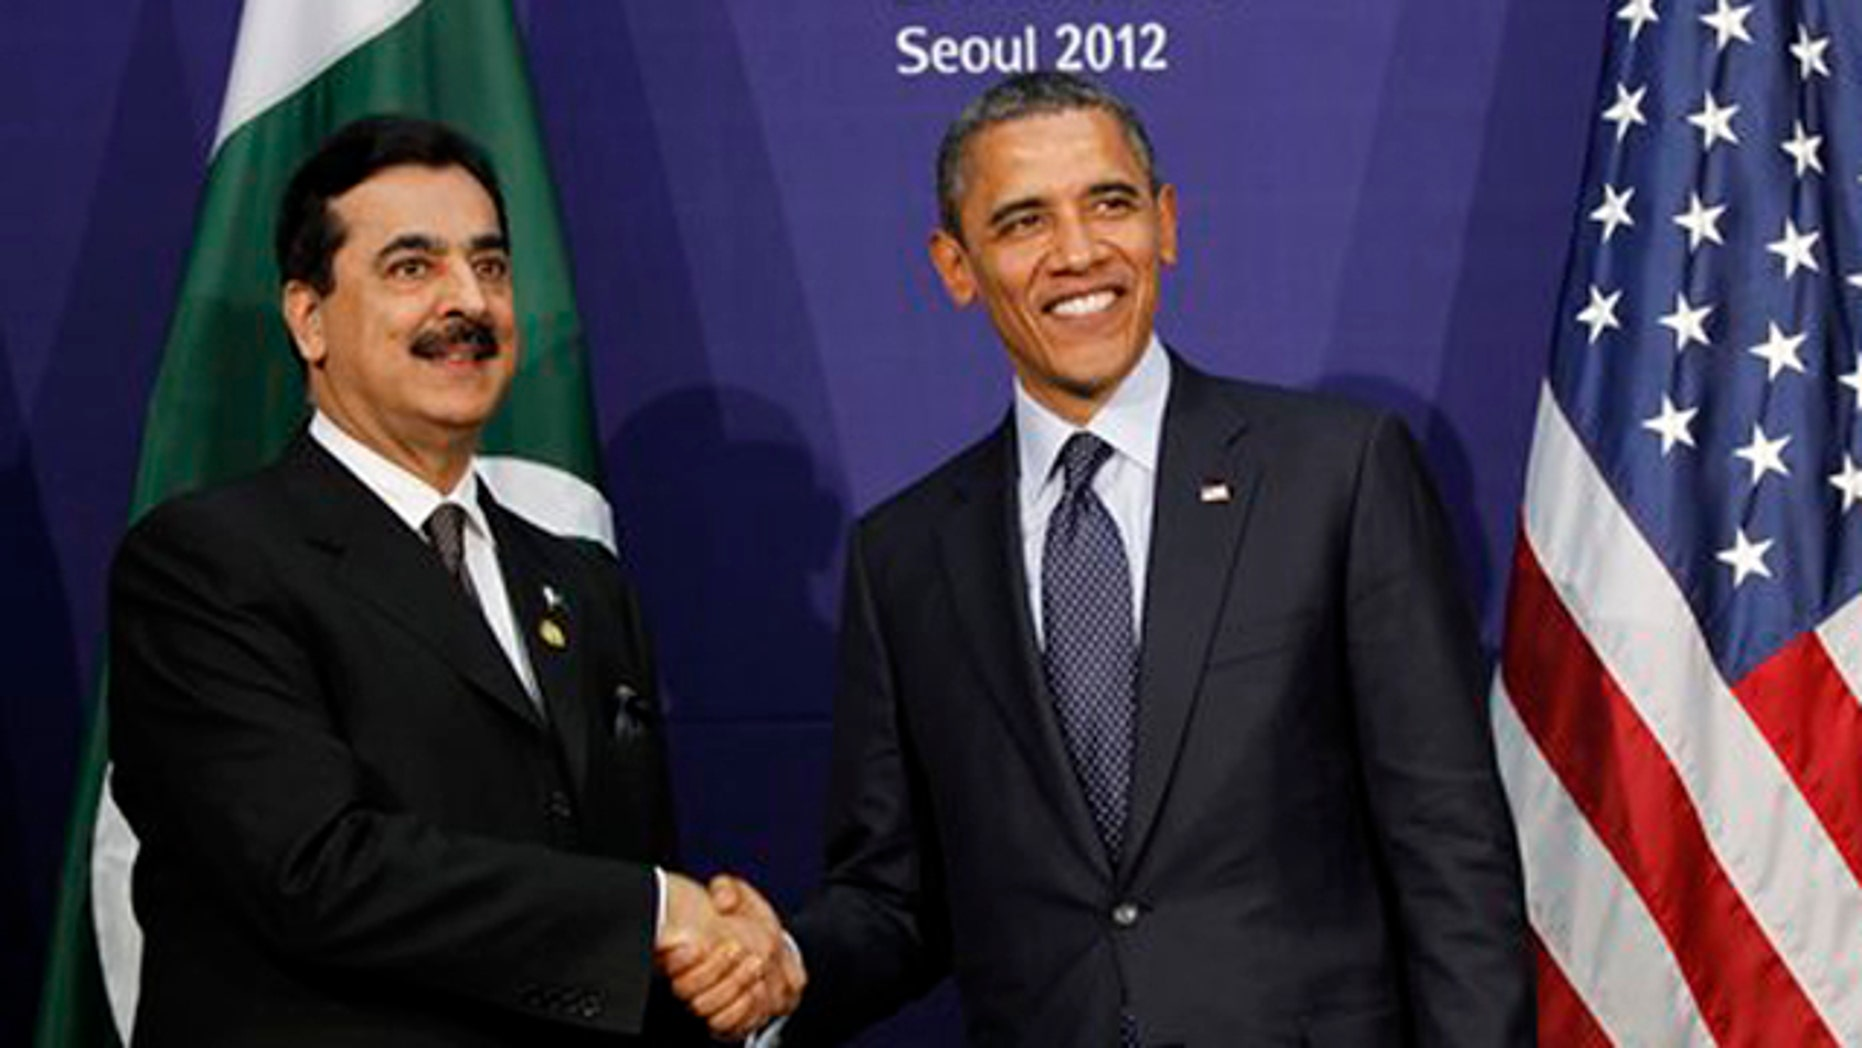 Mar. 27, 2012: Pakistani Prime Minister Syed Yusuf Raza Gilani, left, and U.S. President Barack Obama smile during their bilateral meeting on the sidelines of the Nuclear Security Summit in Seoul, South Korea.